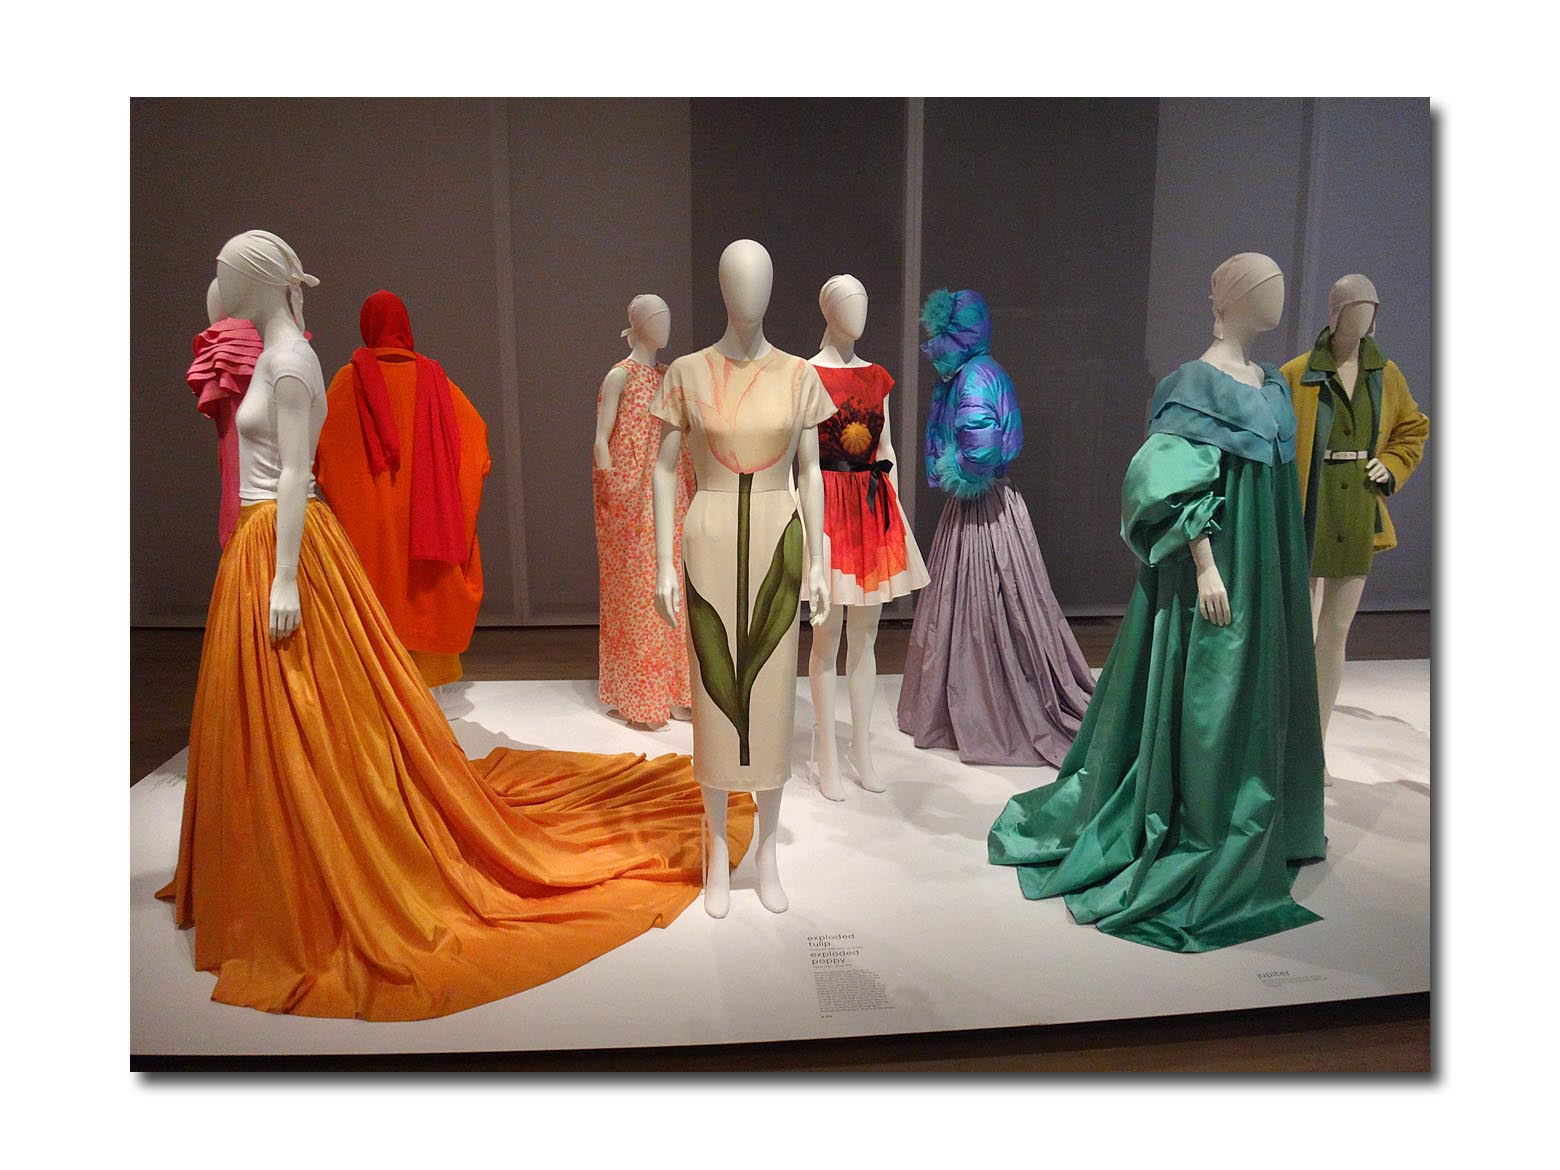 Isaac Mizrahi S Story May Be Unruly Not So His Exhibition Lookonline